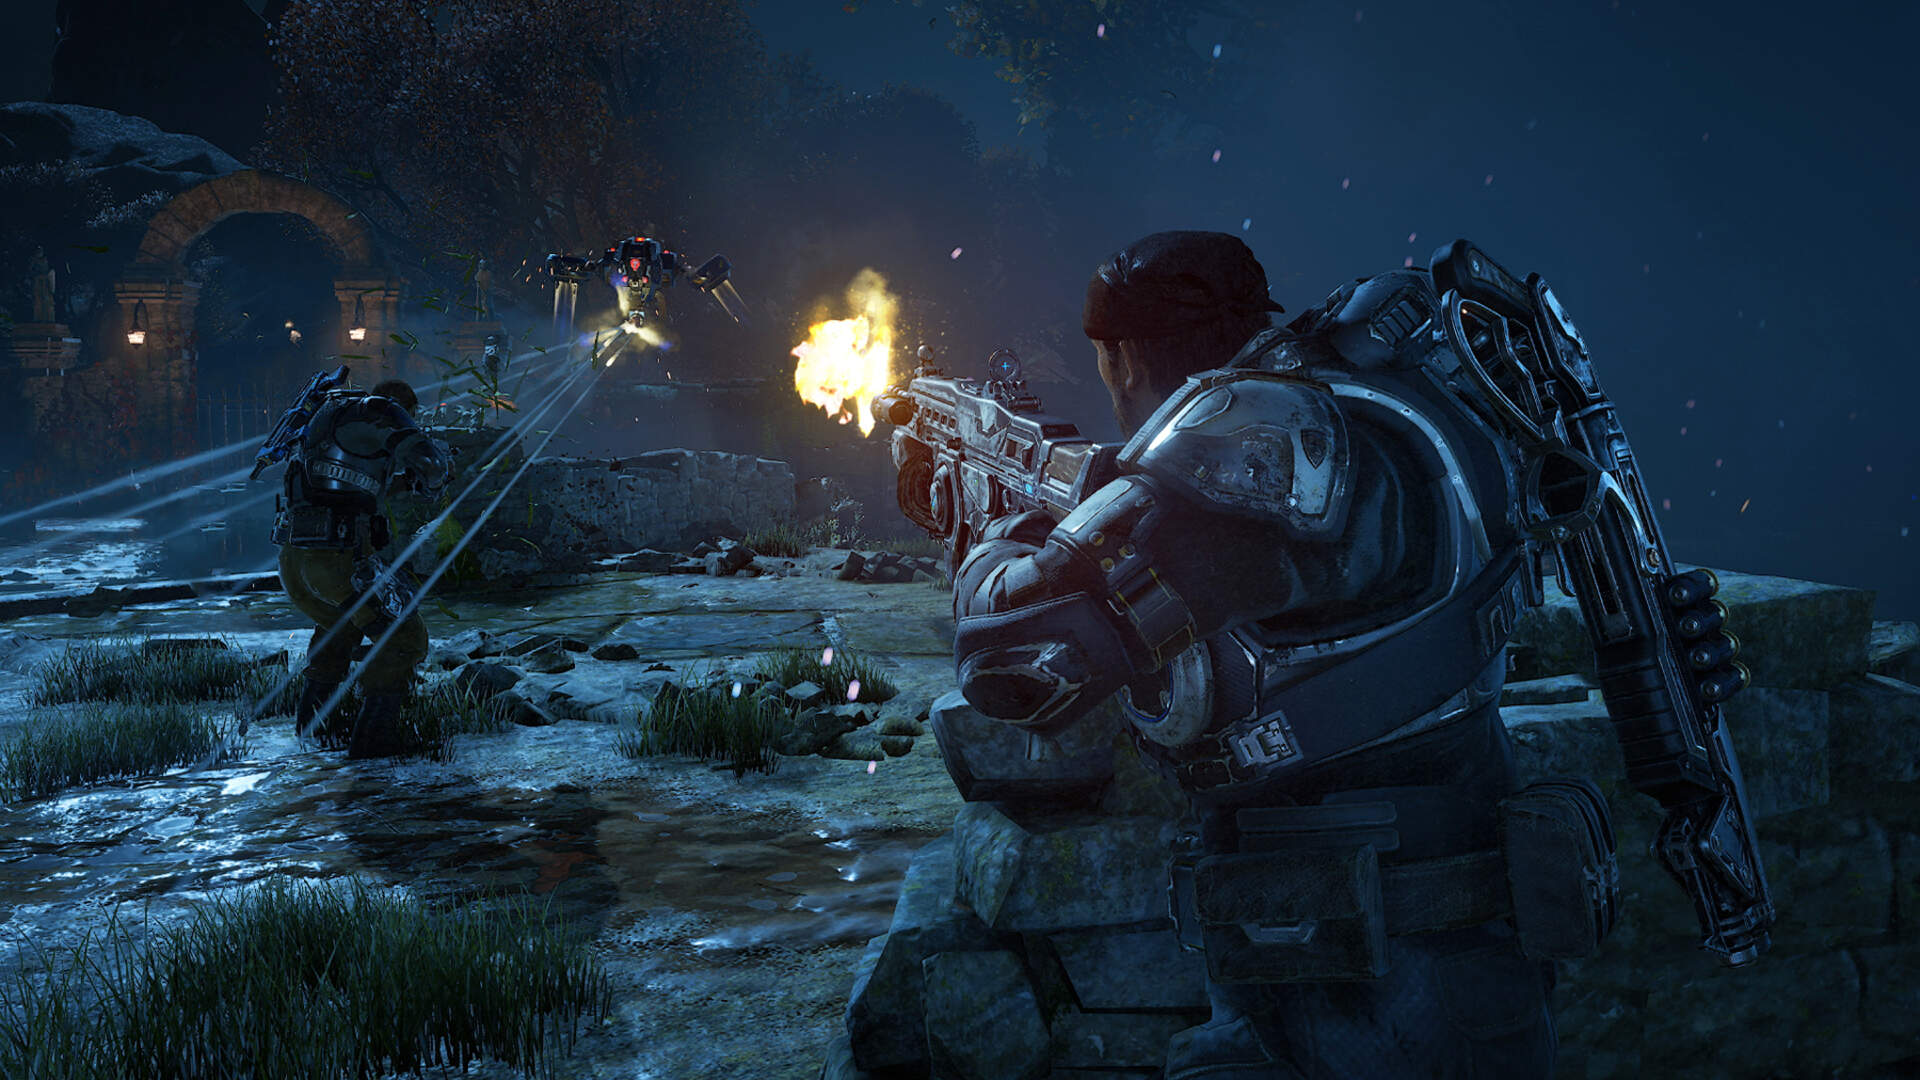 Gears of War 4 Xbox One Review: Switching Gears